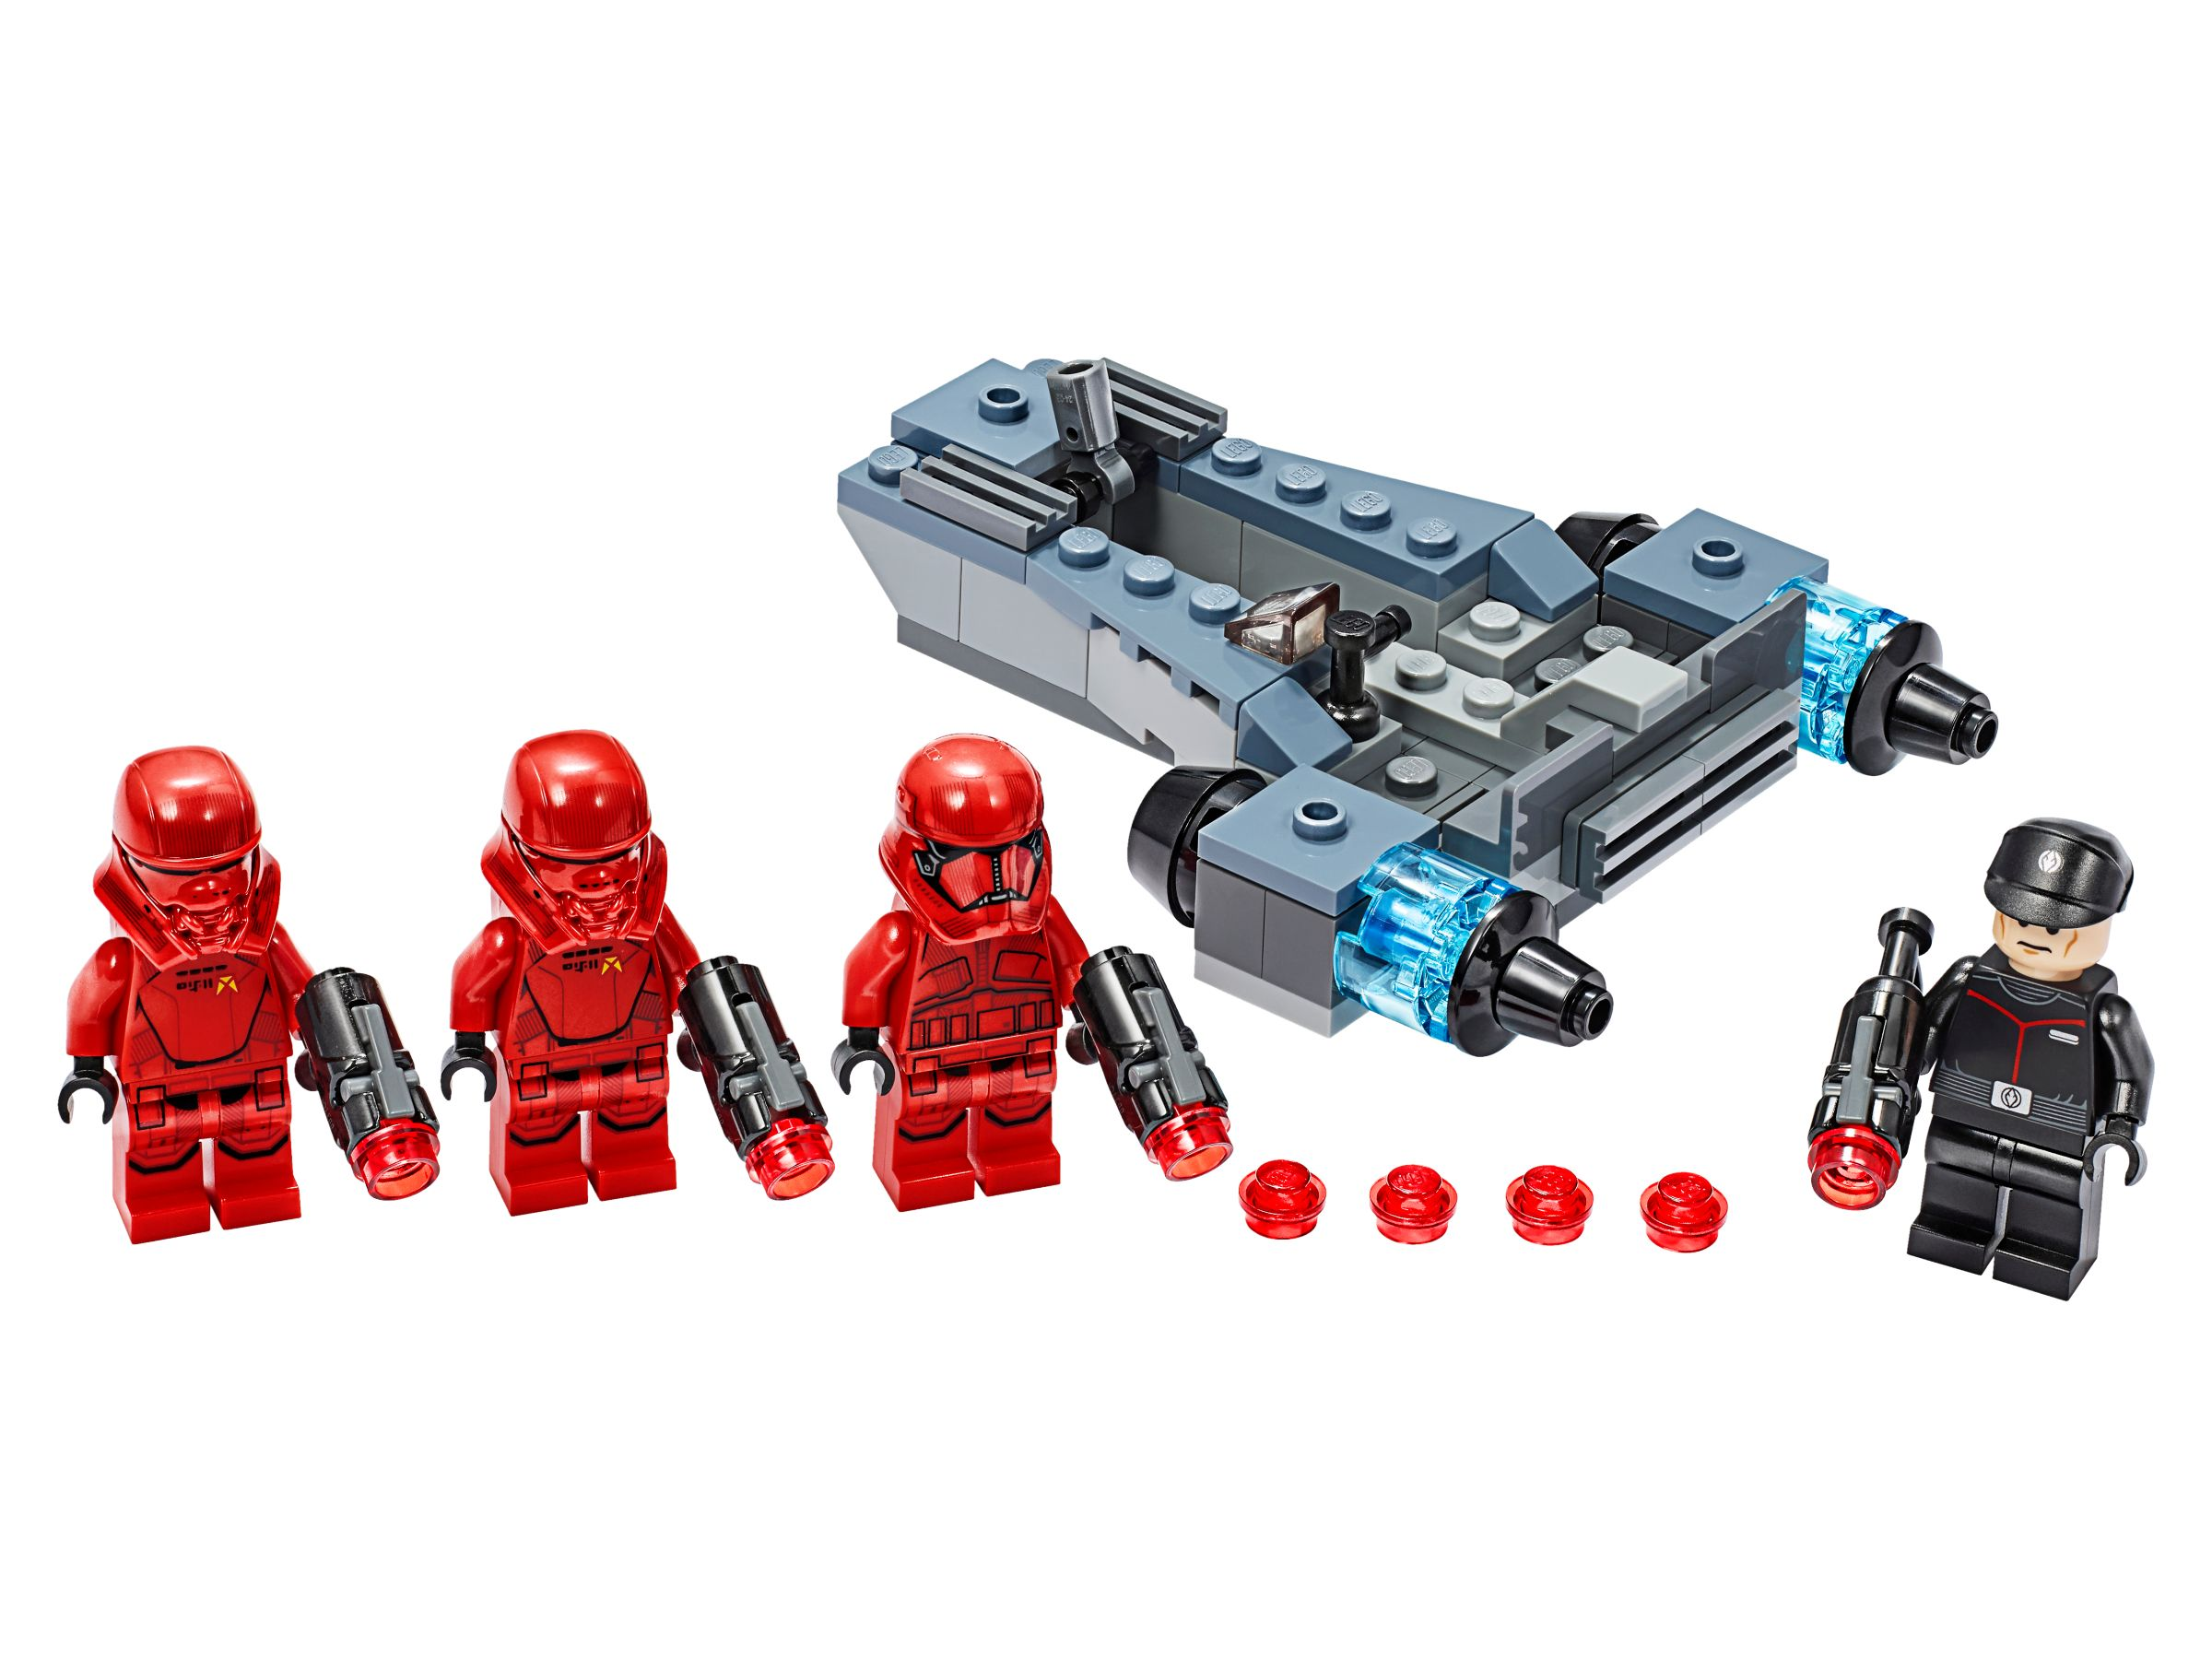 LEGO Star Wars 75266 Sith Troopers™ Battle Pack